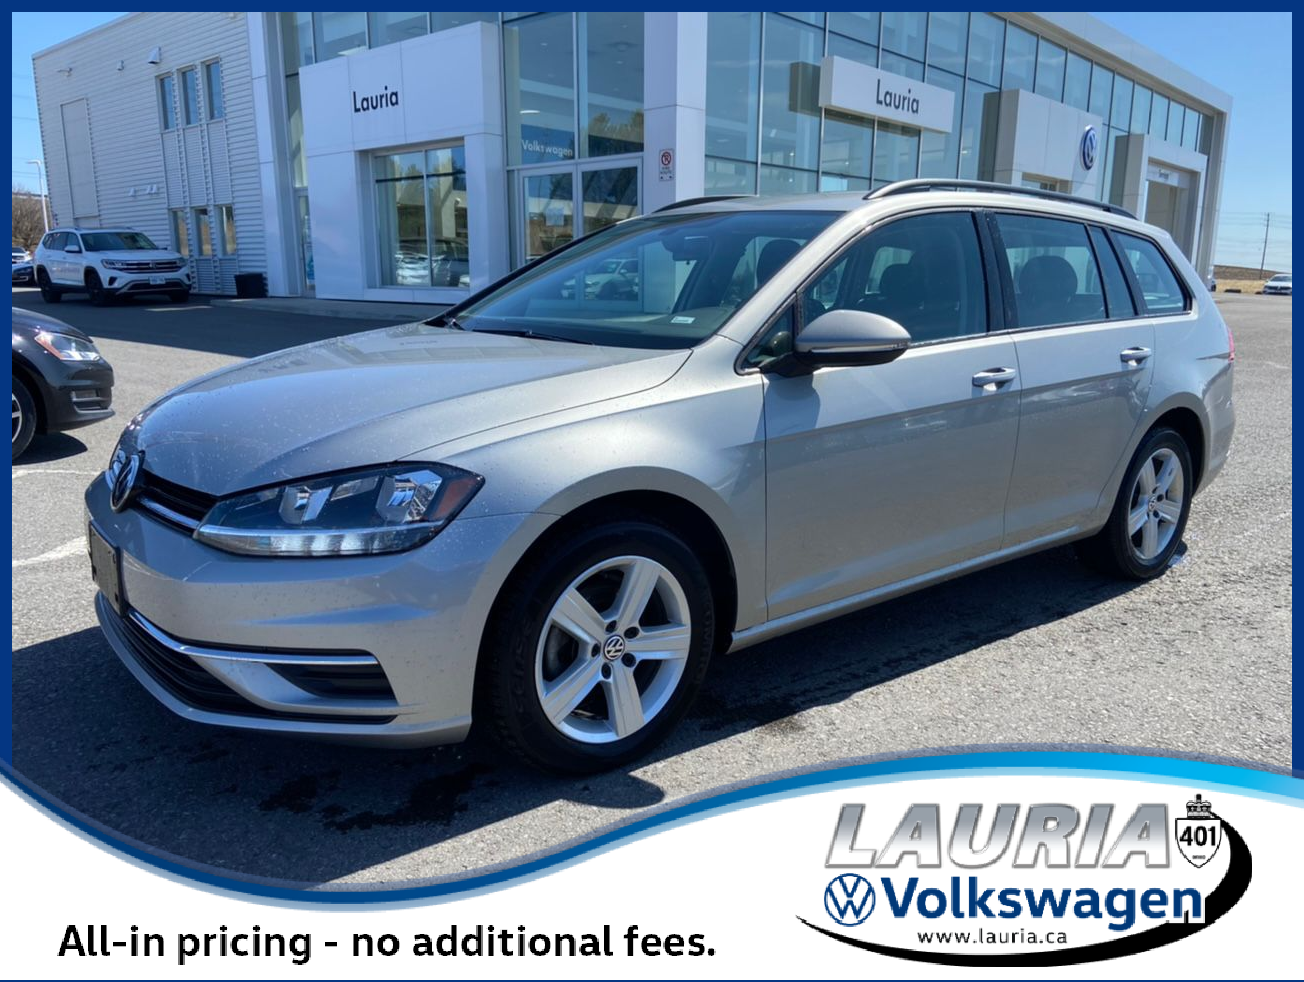 Certified Pre-Owned 2019 Volkswagen Golf SportWagen Comfortline 4Motion AWD - LOW KMS